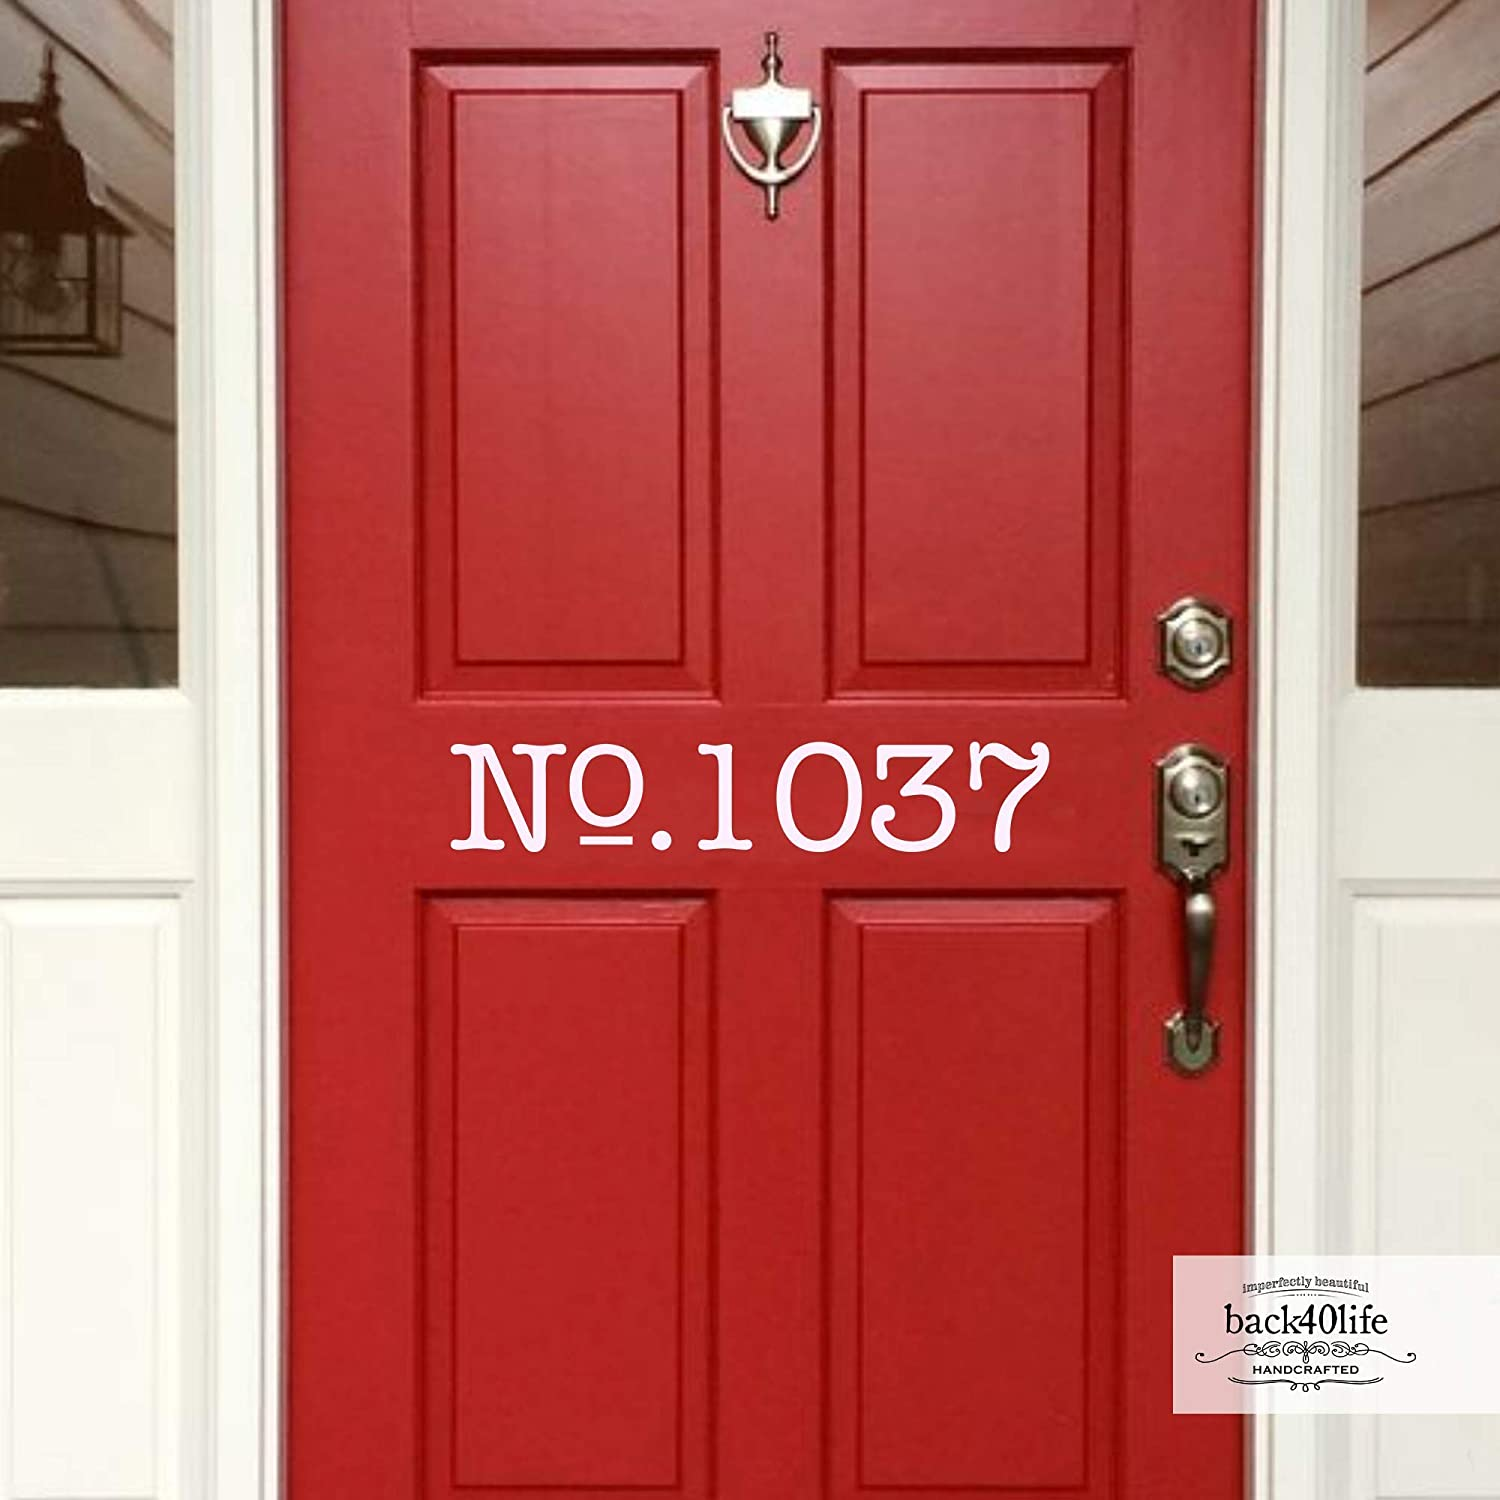 Credence Back40life - House At the price Number Decal E-002d Door